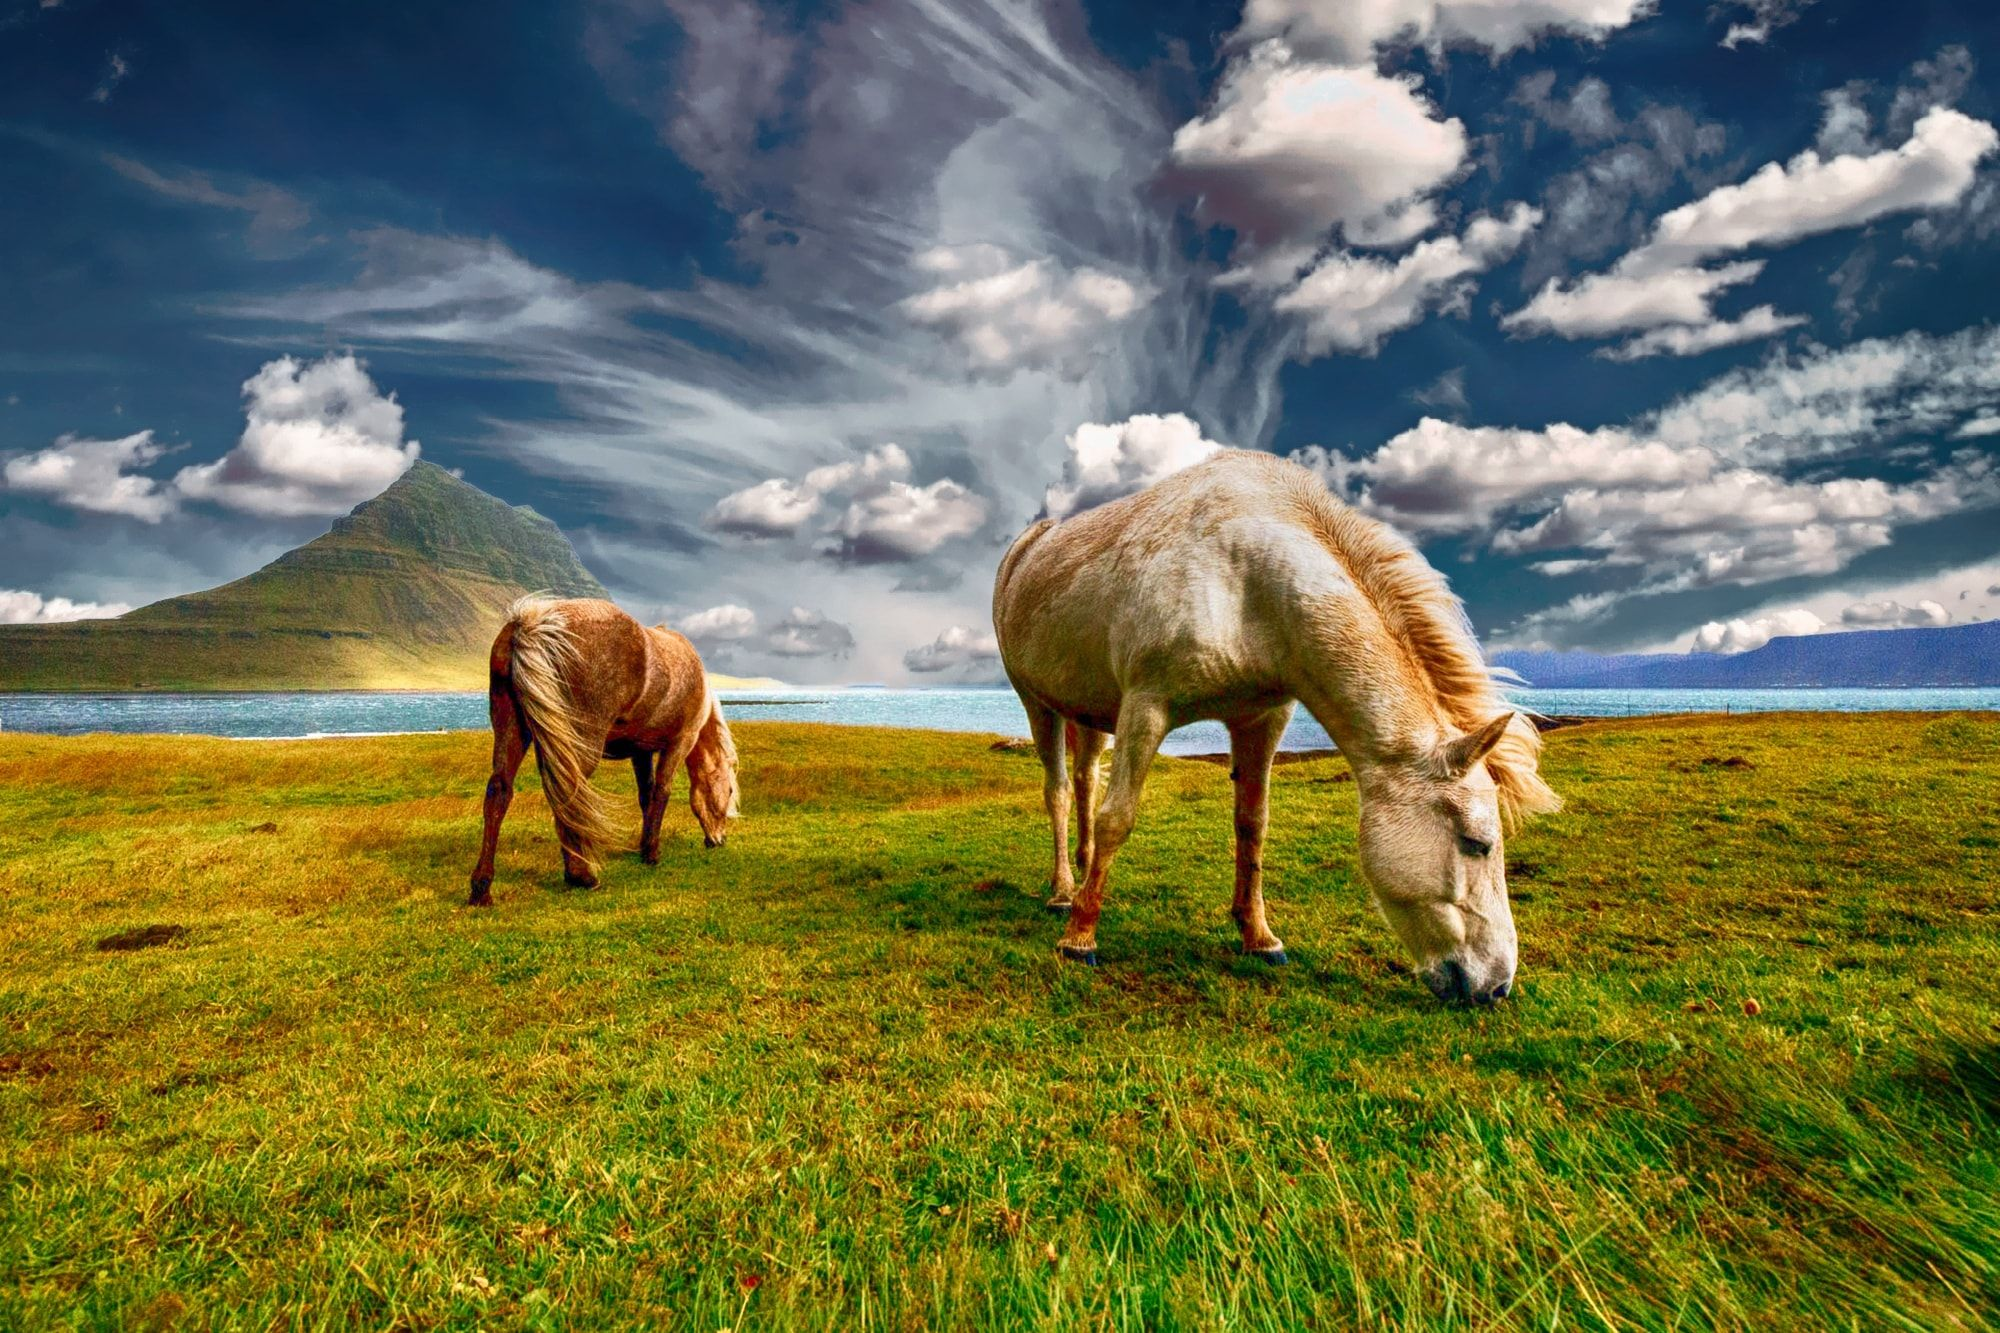 Must see Wallpaper Horse Landscape - f204d736bbe4aa15087f558bc232e400  You Should Have_366320.jpg